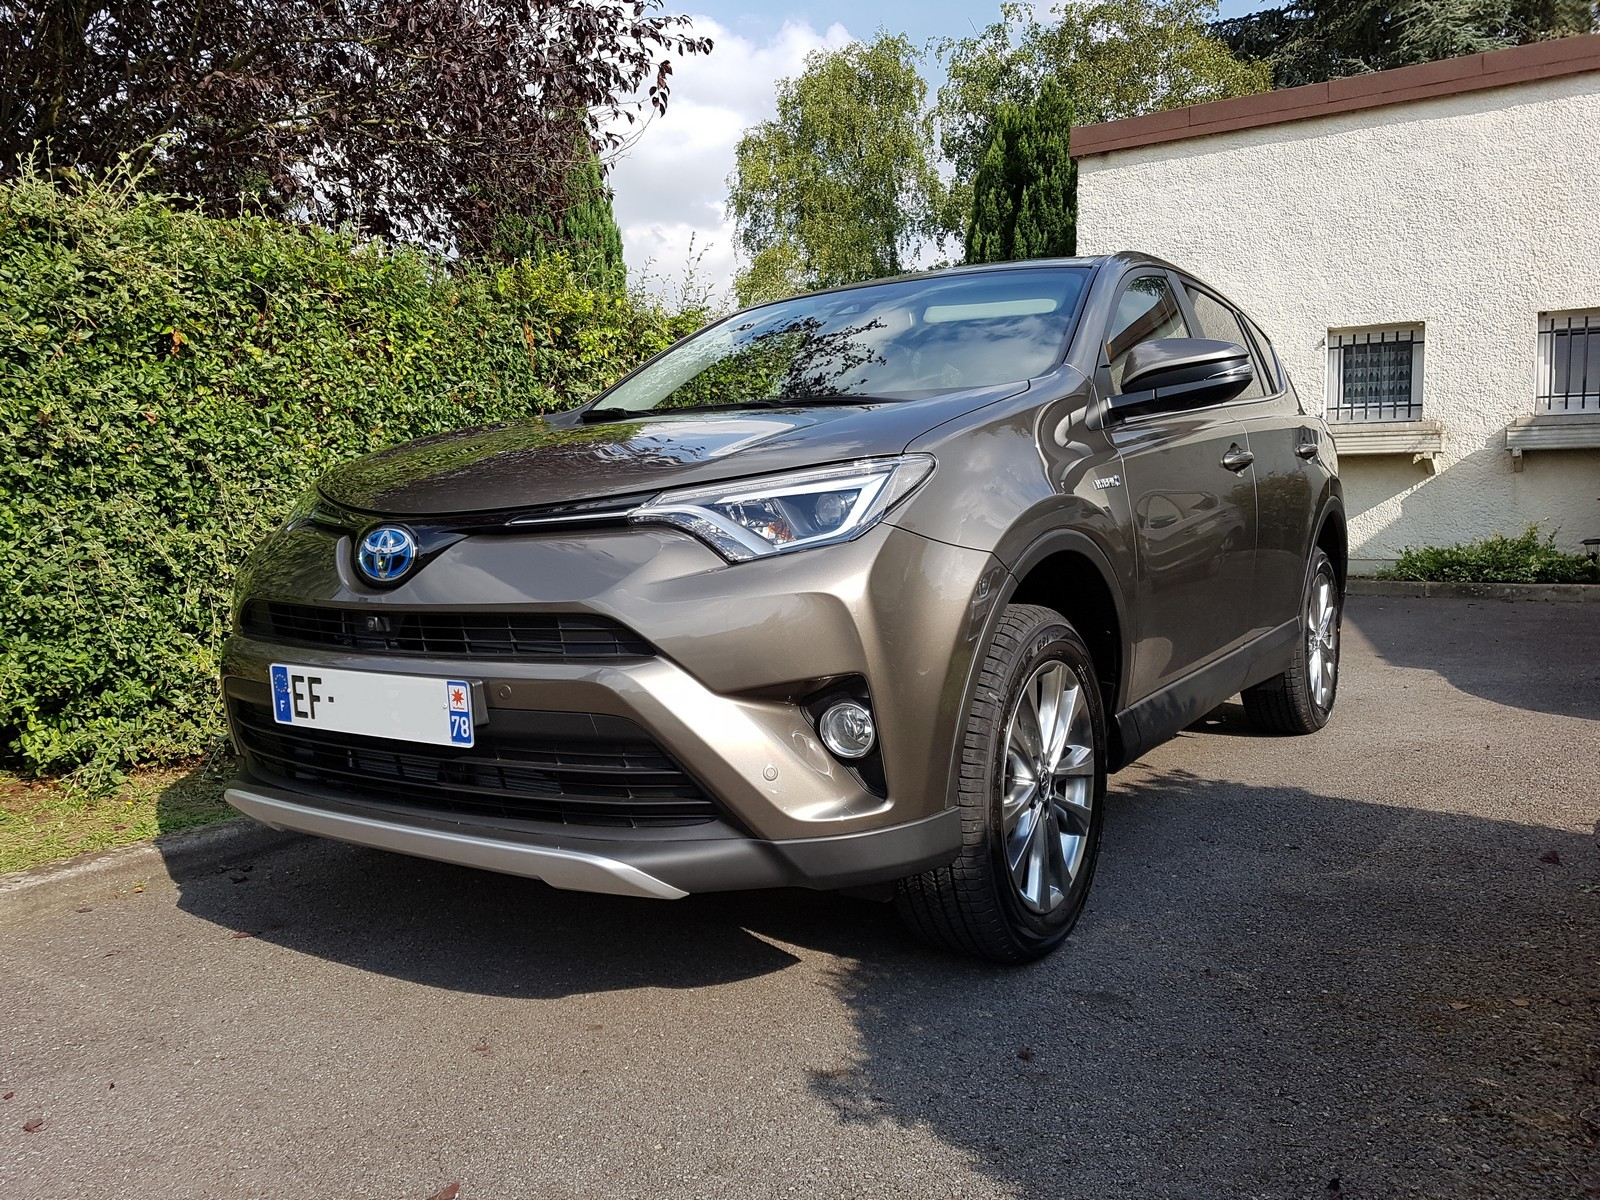 toyota rav4 iv hybrid 2013 2018 topic officiel page 17 rav4 toyota forum marques. Black Bedroom Furniture Sets. Home Design Ideas